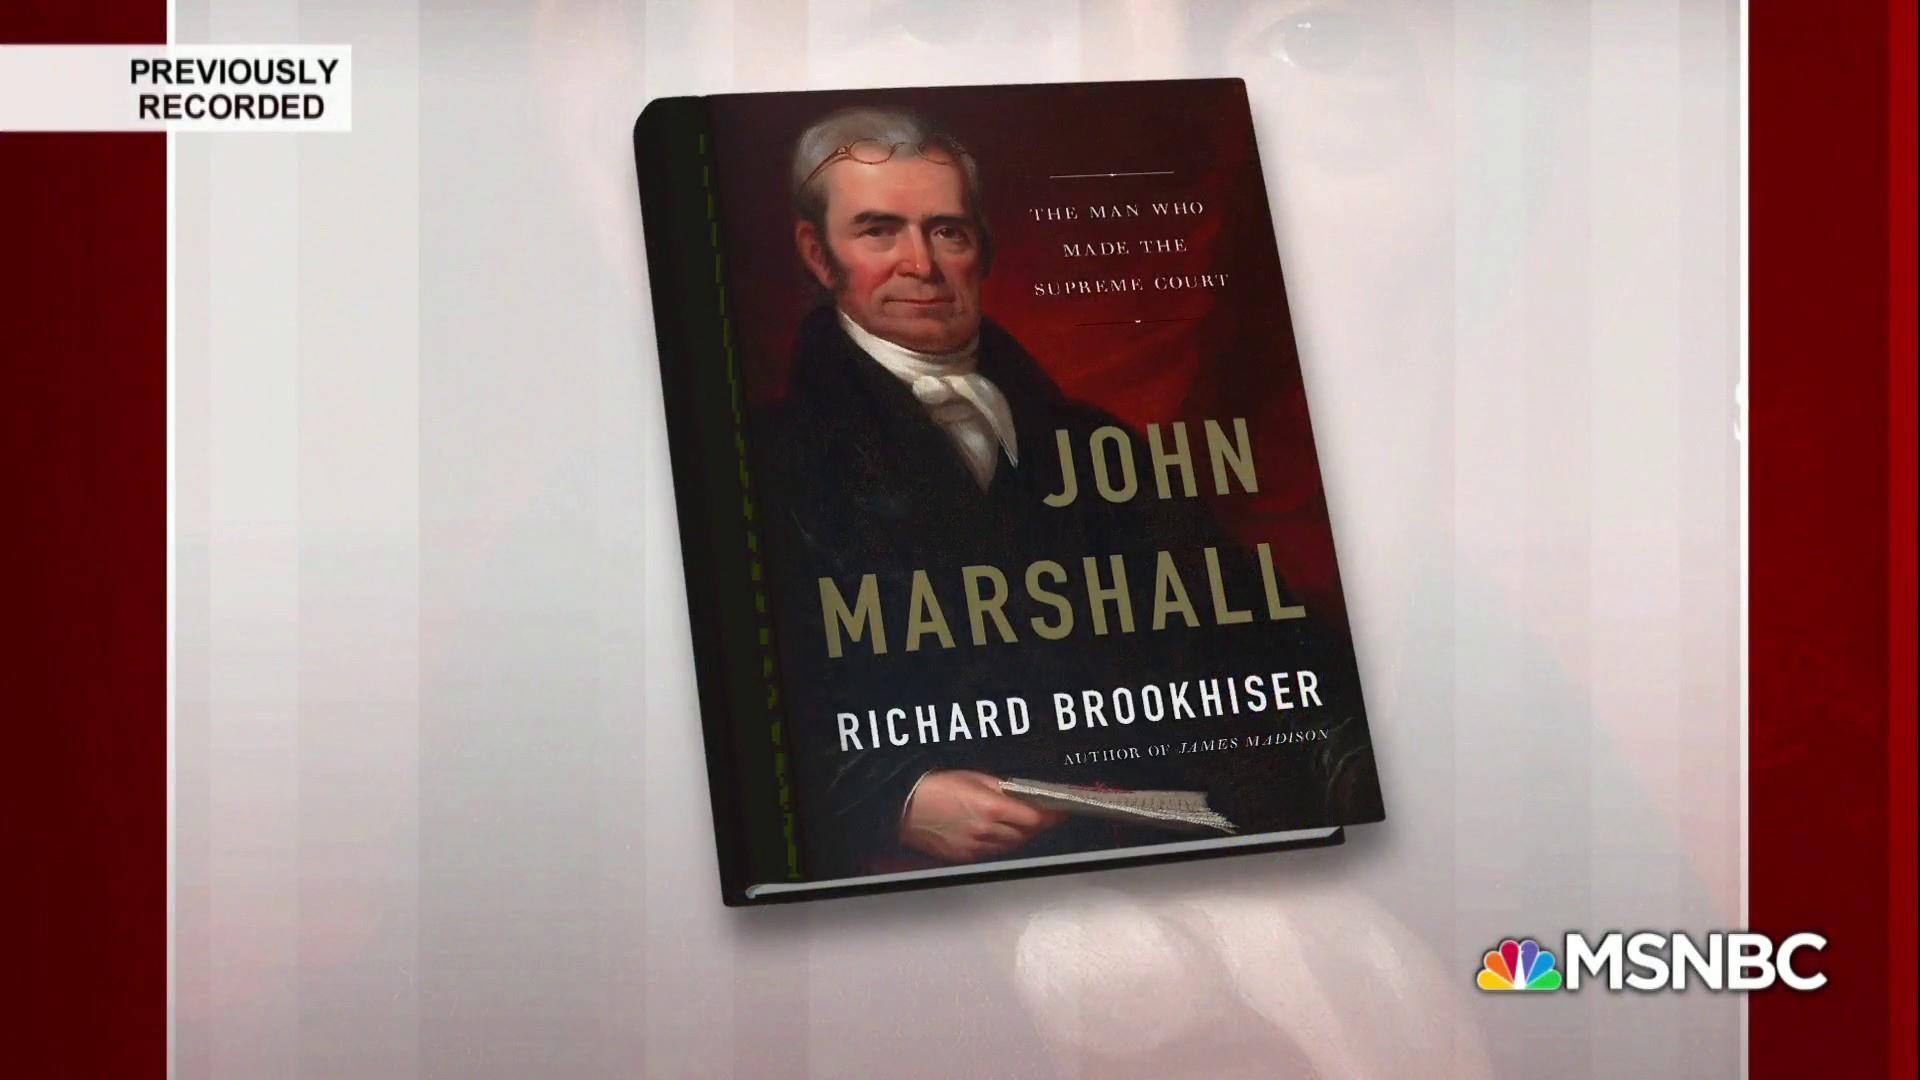 John Marshall's road to the Supreme Court